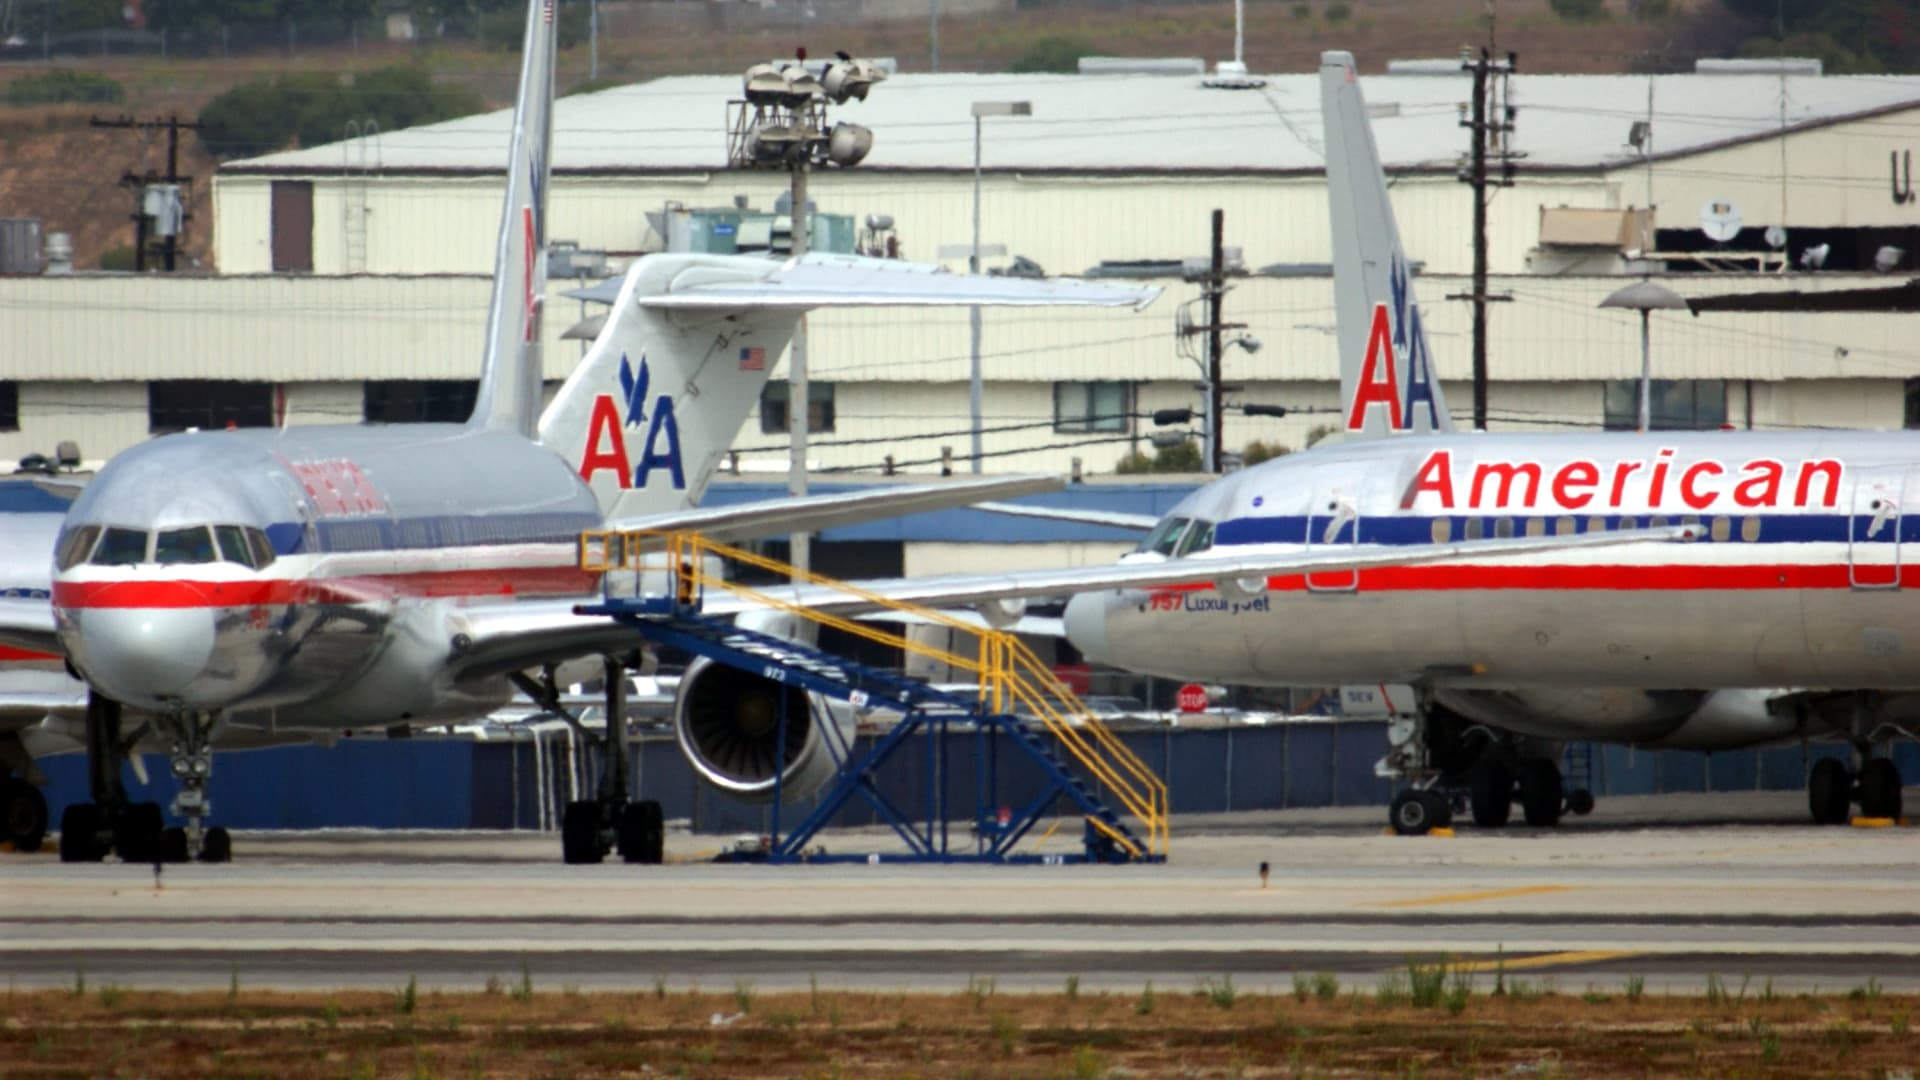 Planes sit on the tarmac at Los Angeles International Airport (LAX), which is closed because of the air attacks on New York and Washington, DC, September 11, 2001, in Los Angeles, CA.